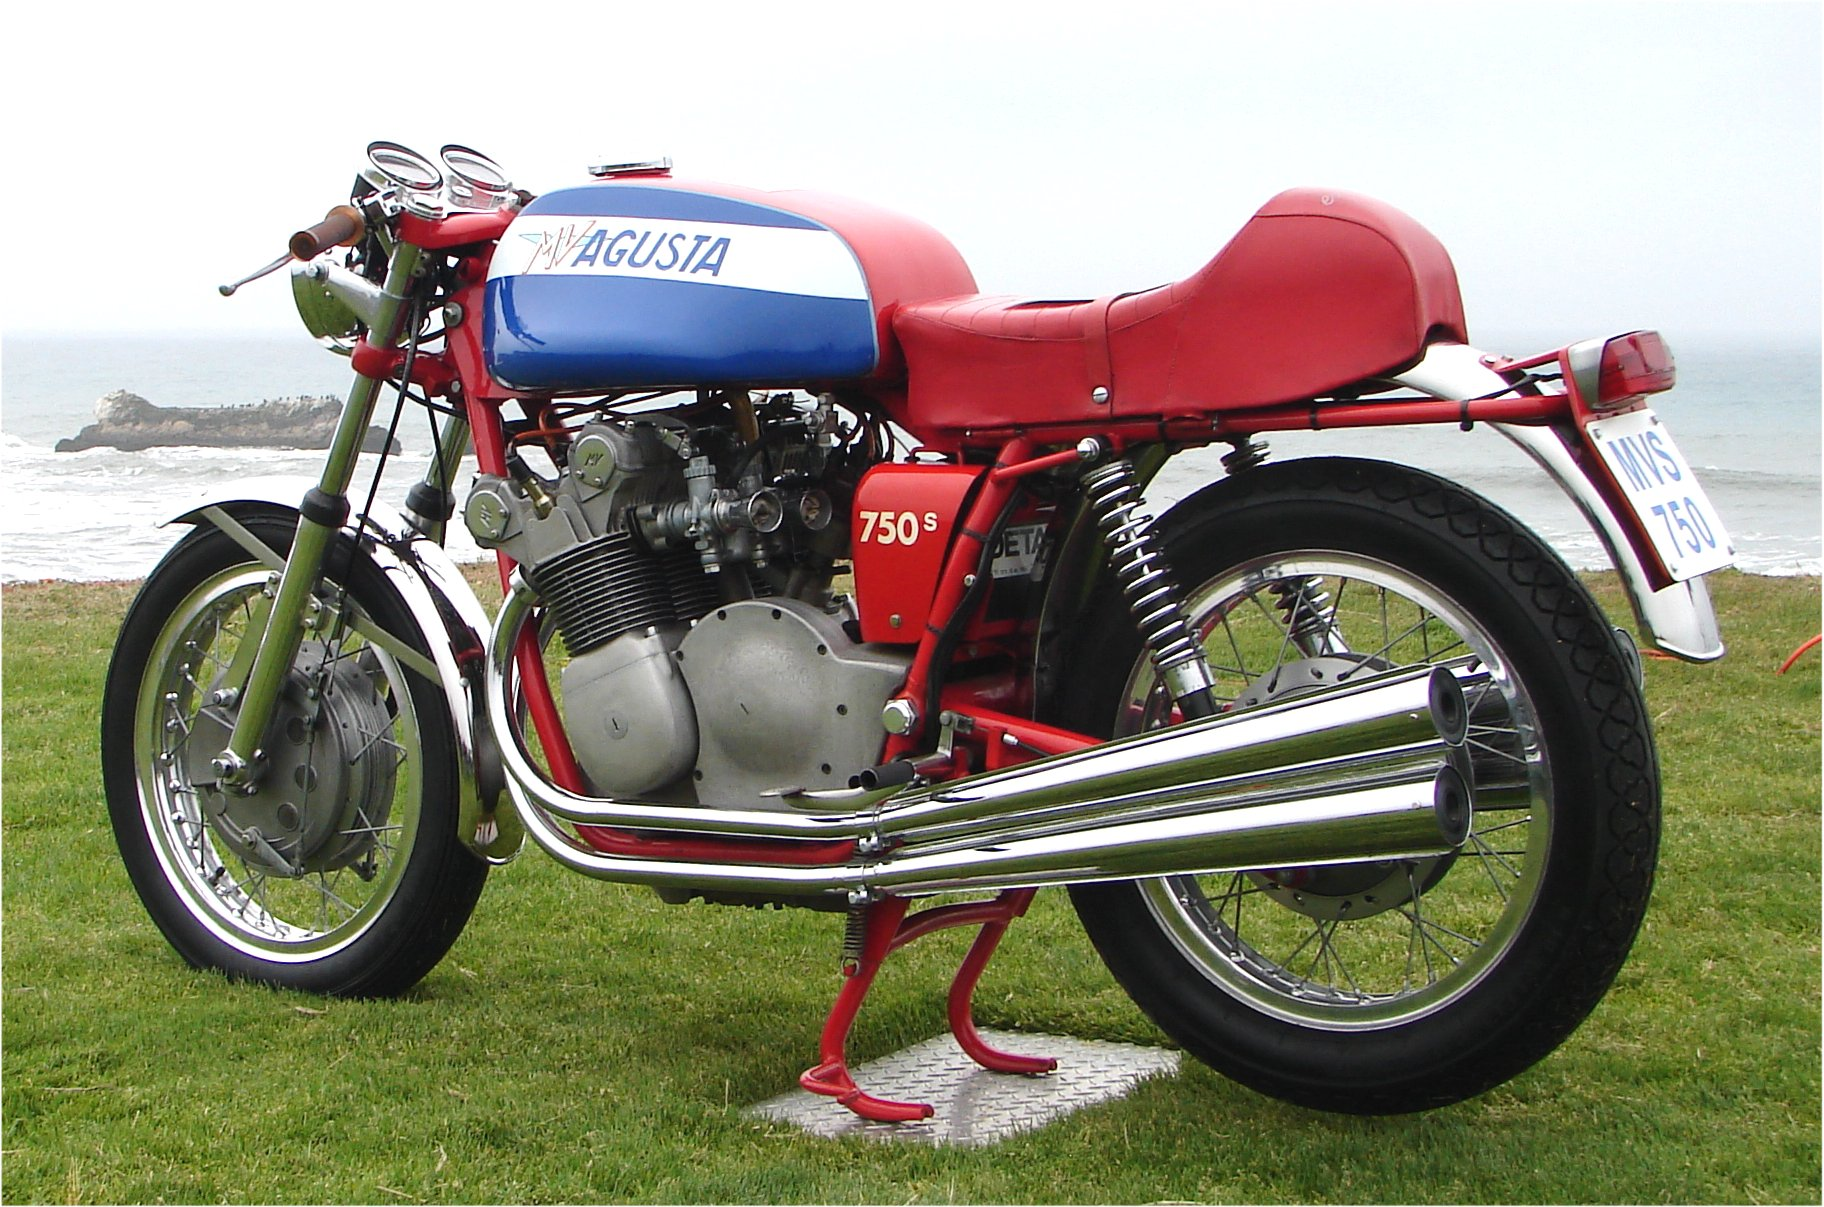 MV Agusta 750 S 1971 images #113159